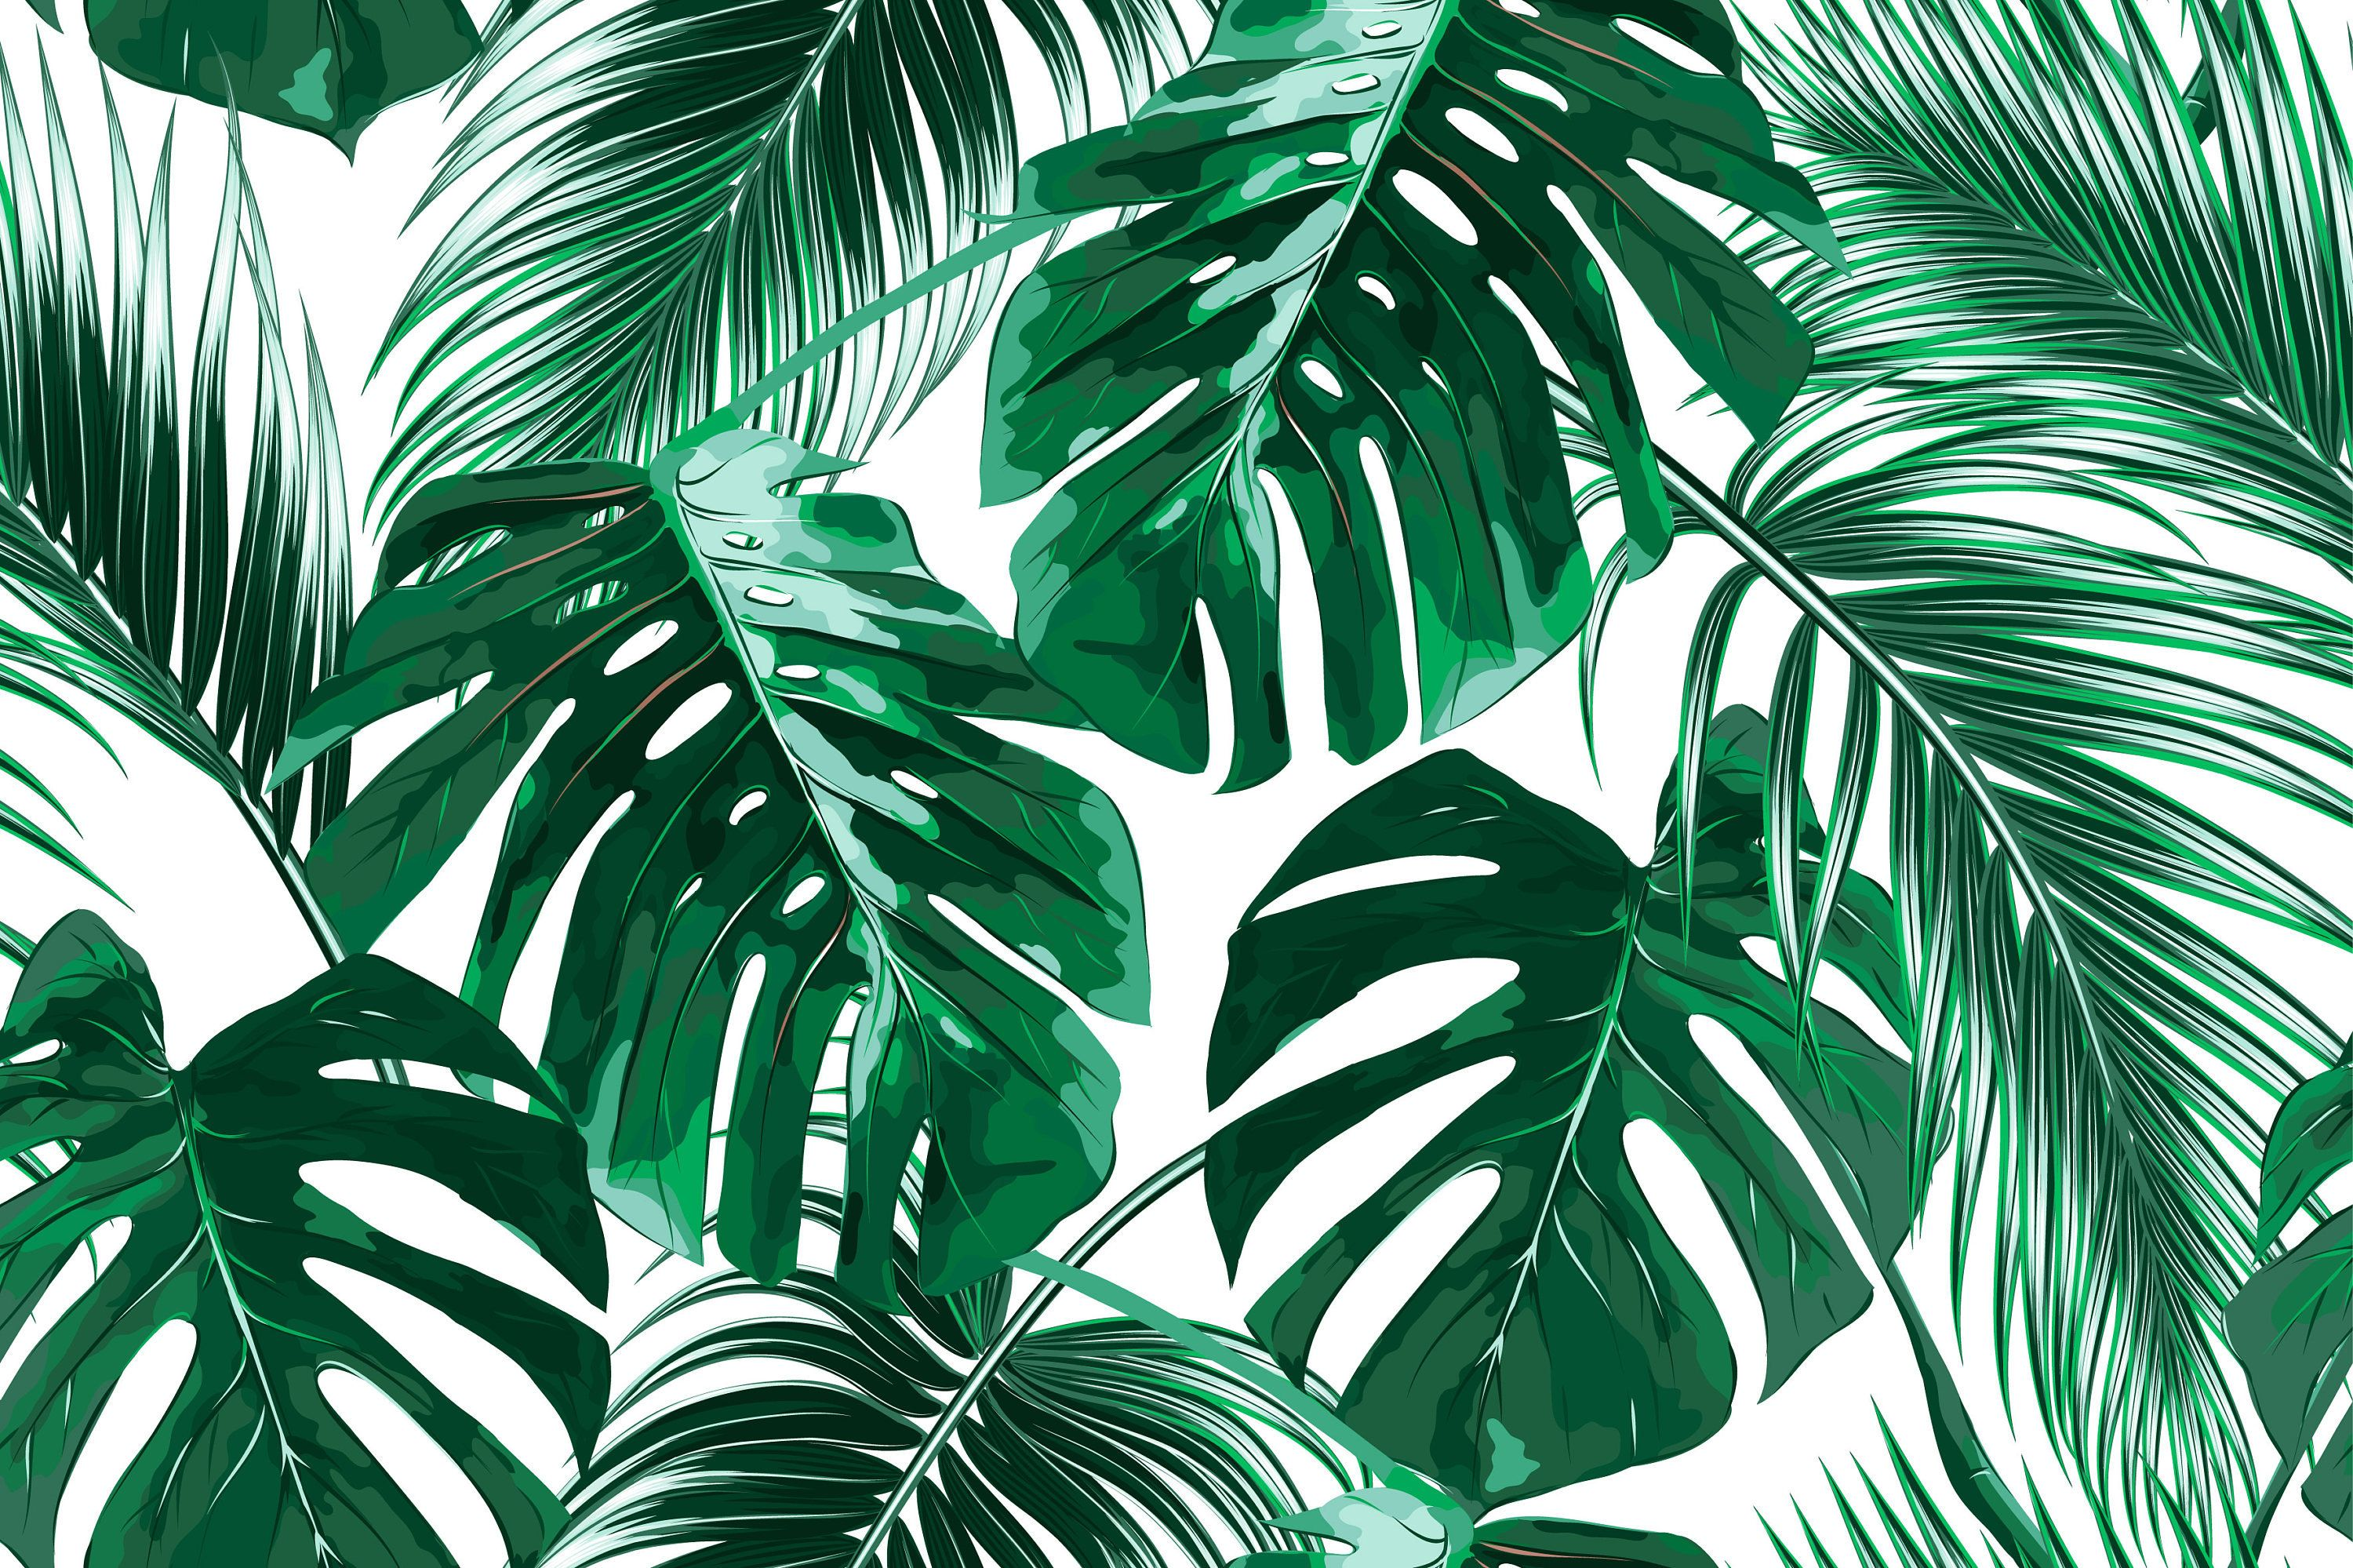 Aesthetic Tropical Leaves Desktop Wallpaper